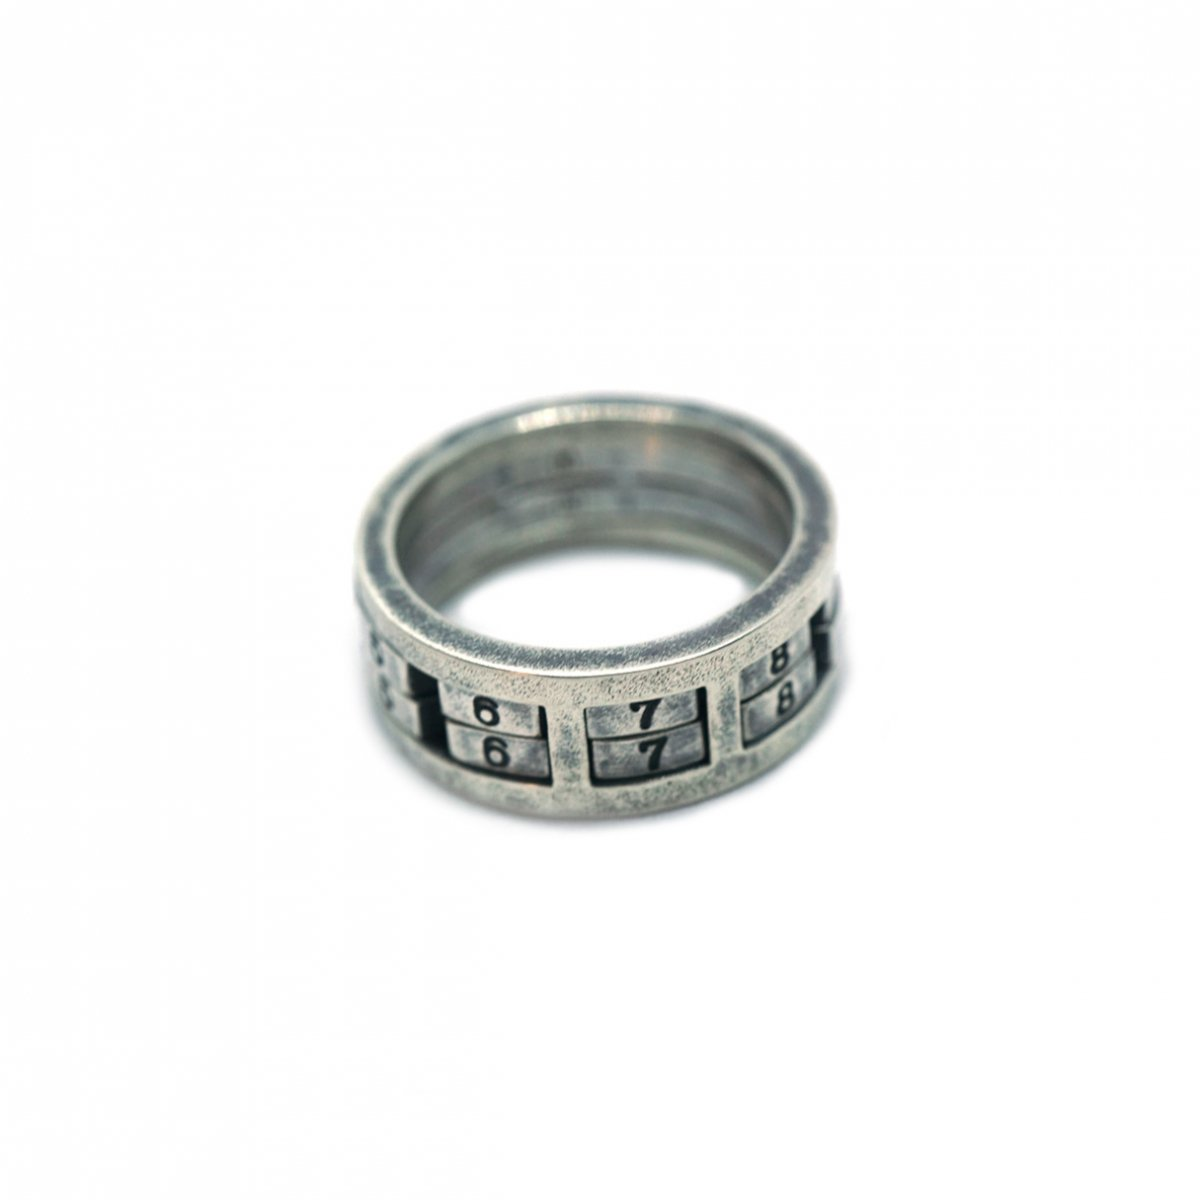 【 VARDE77 x THEFT 】NUMBER ROCK RING 2 SILVER